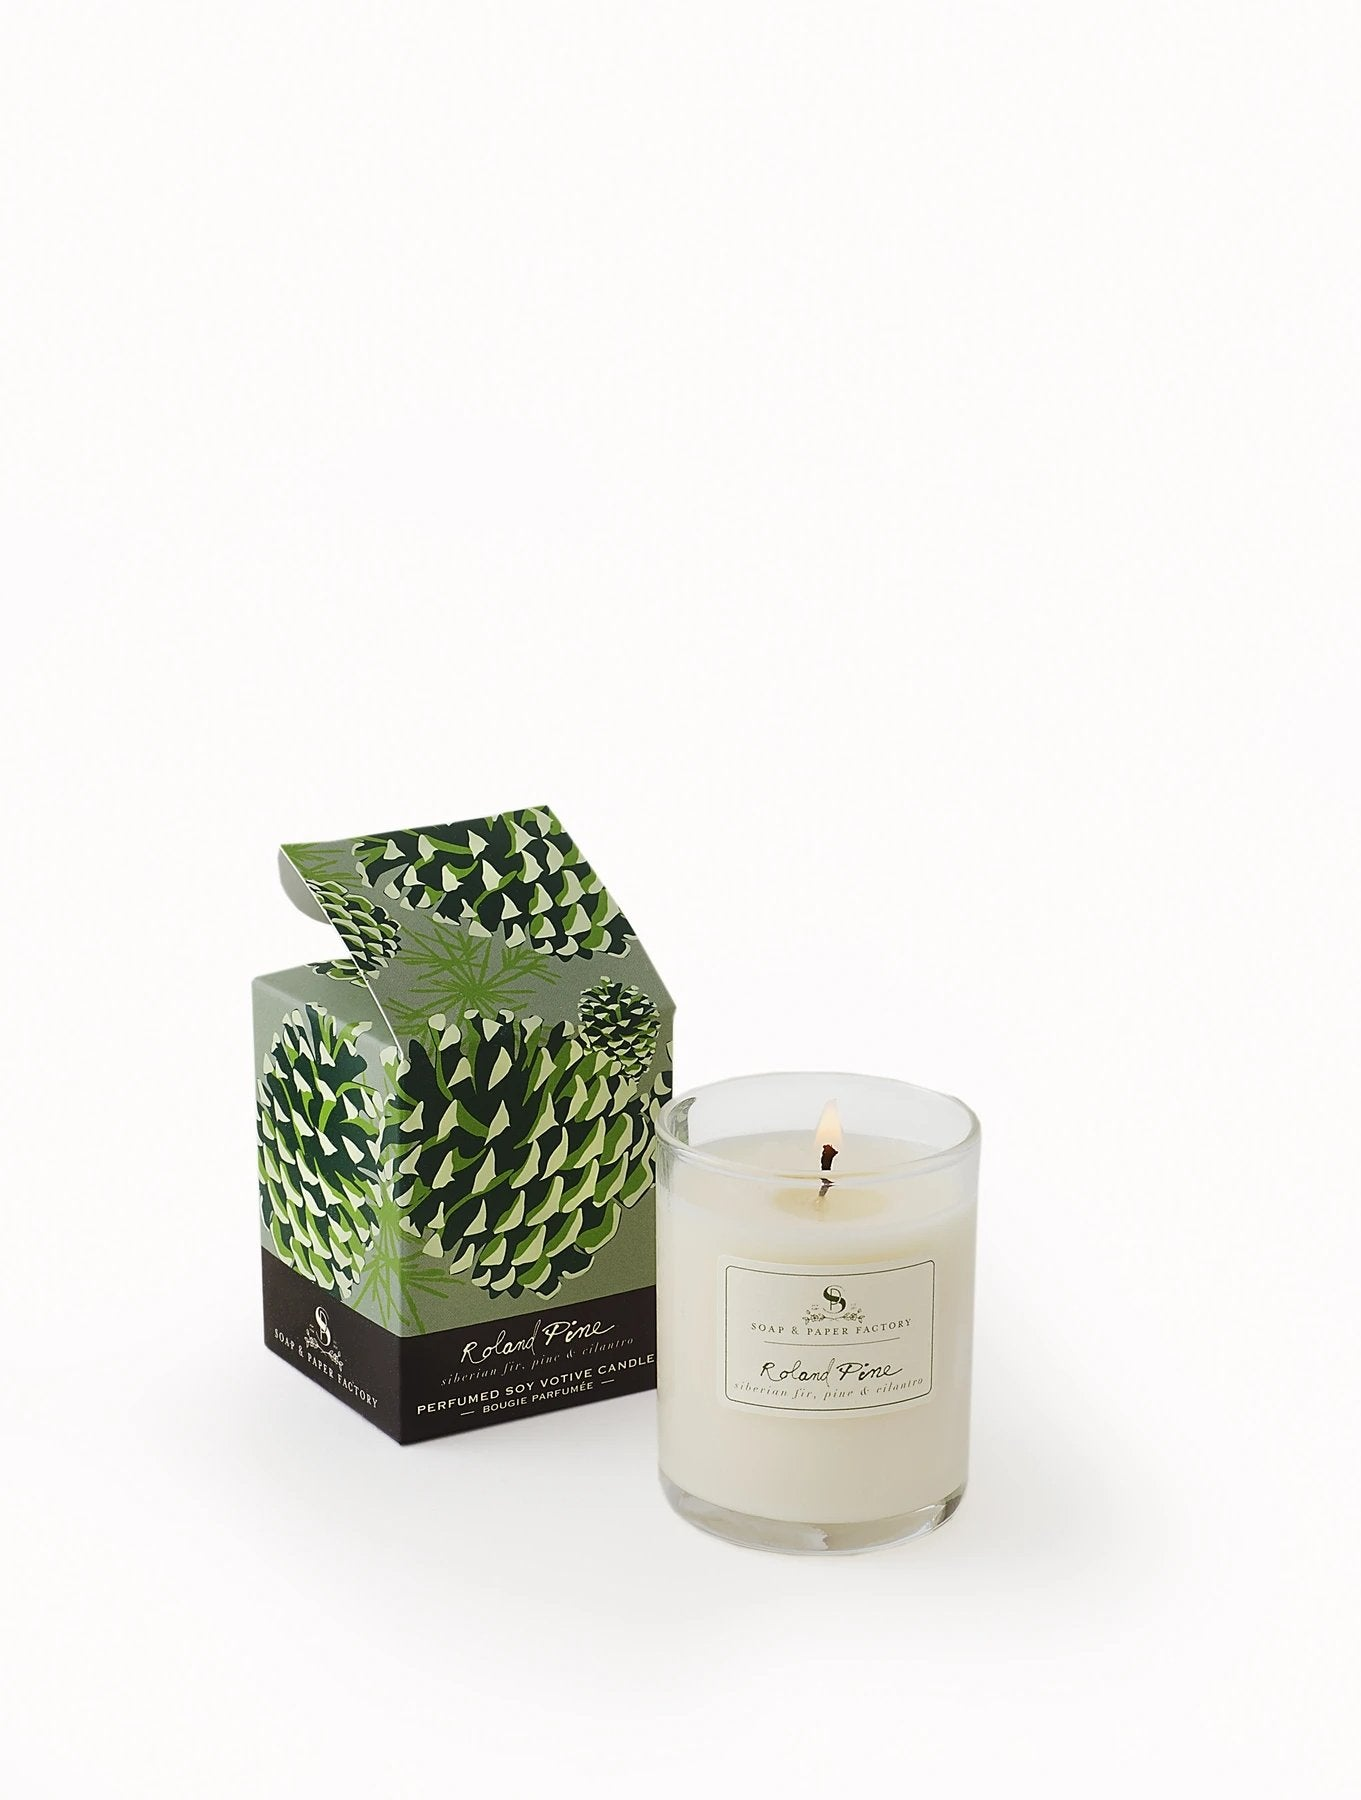 Roland Pine Votive Soy Candle by Soap & Paper Factory